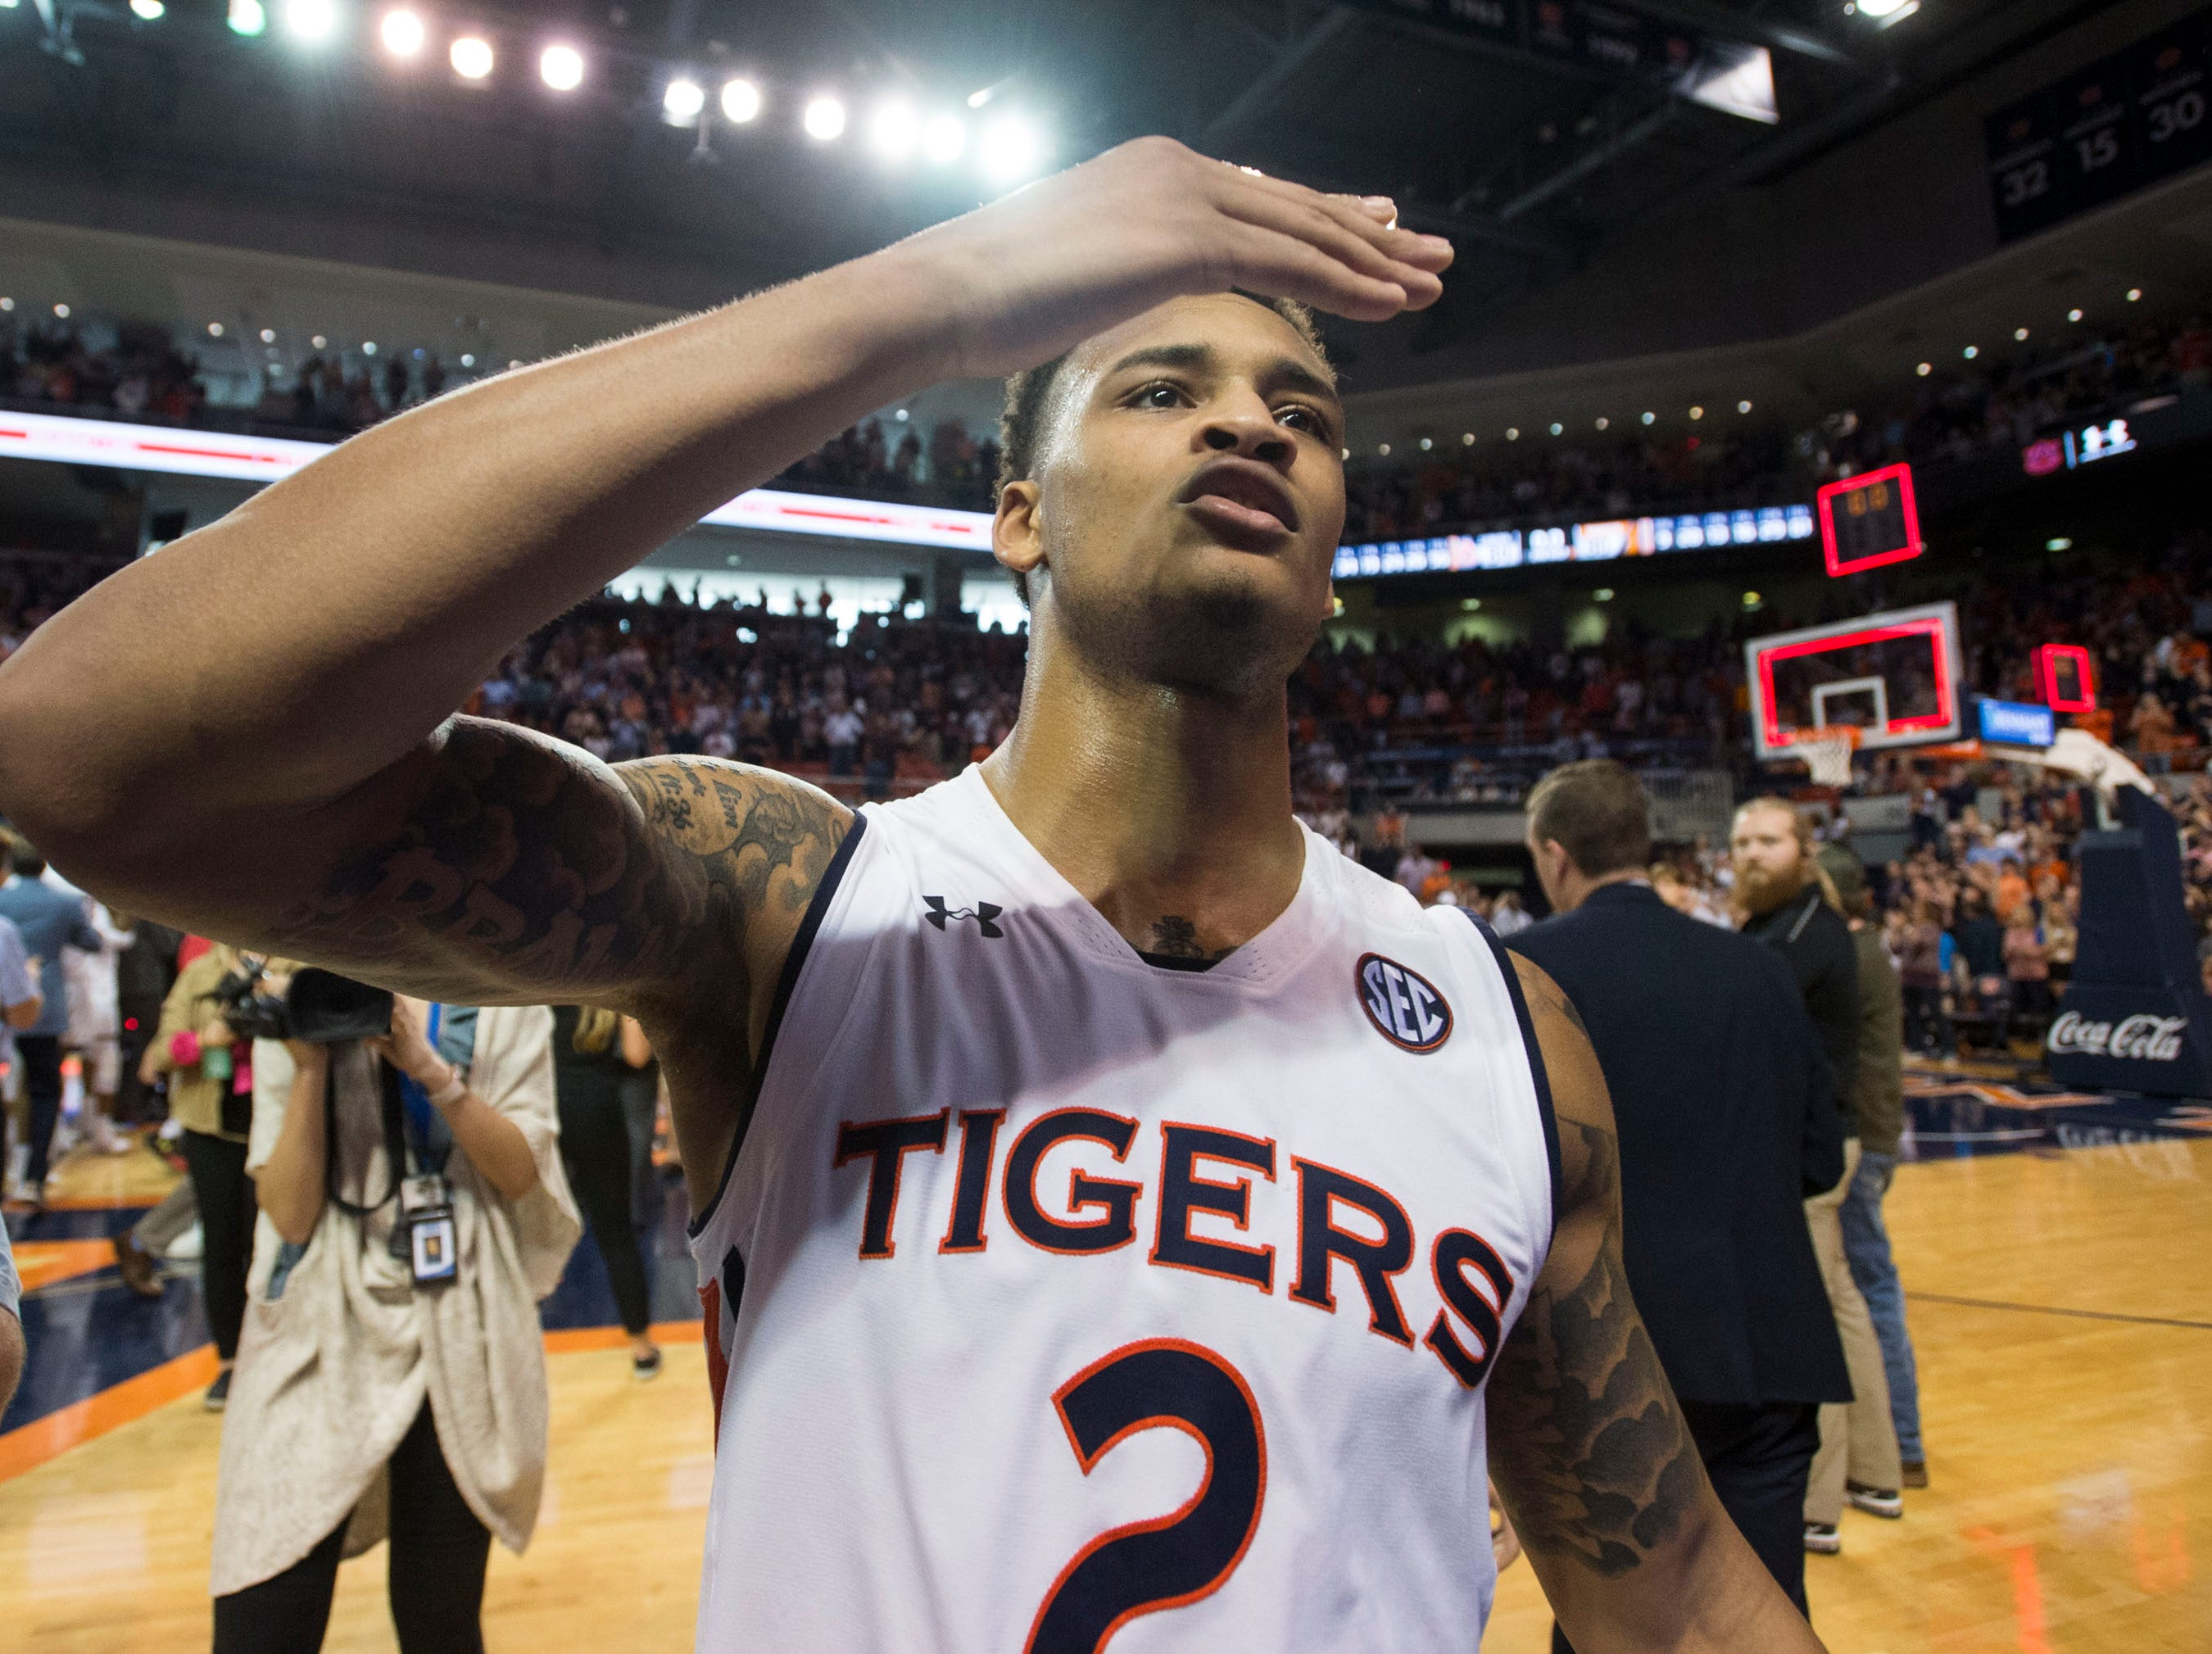 Auburn guard Bryce Brown (2) blows a kiss to the crowd after the game at Auburn Arena in Auburn, Ala., on Saturday, March 9, 2019. Auburn defeated Tennessee 84-80.